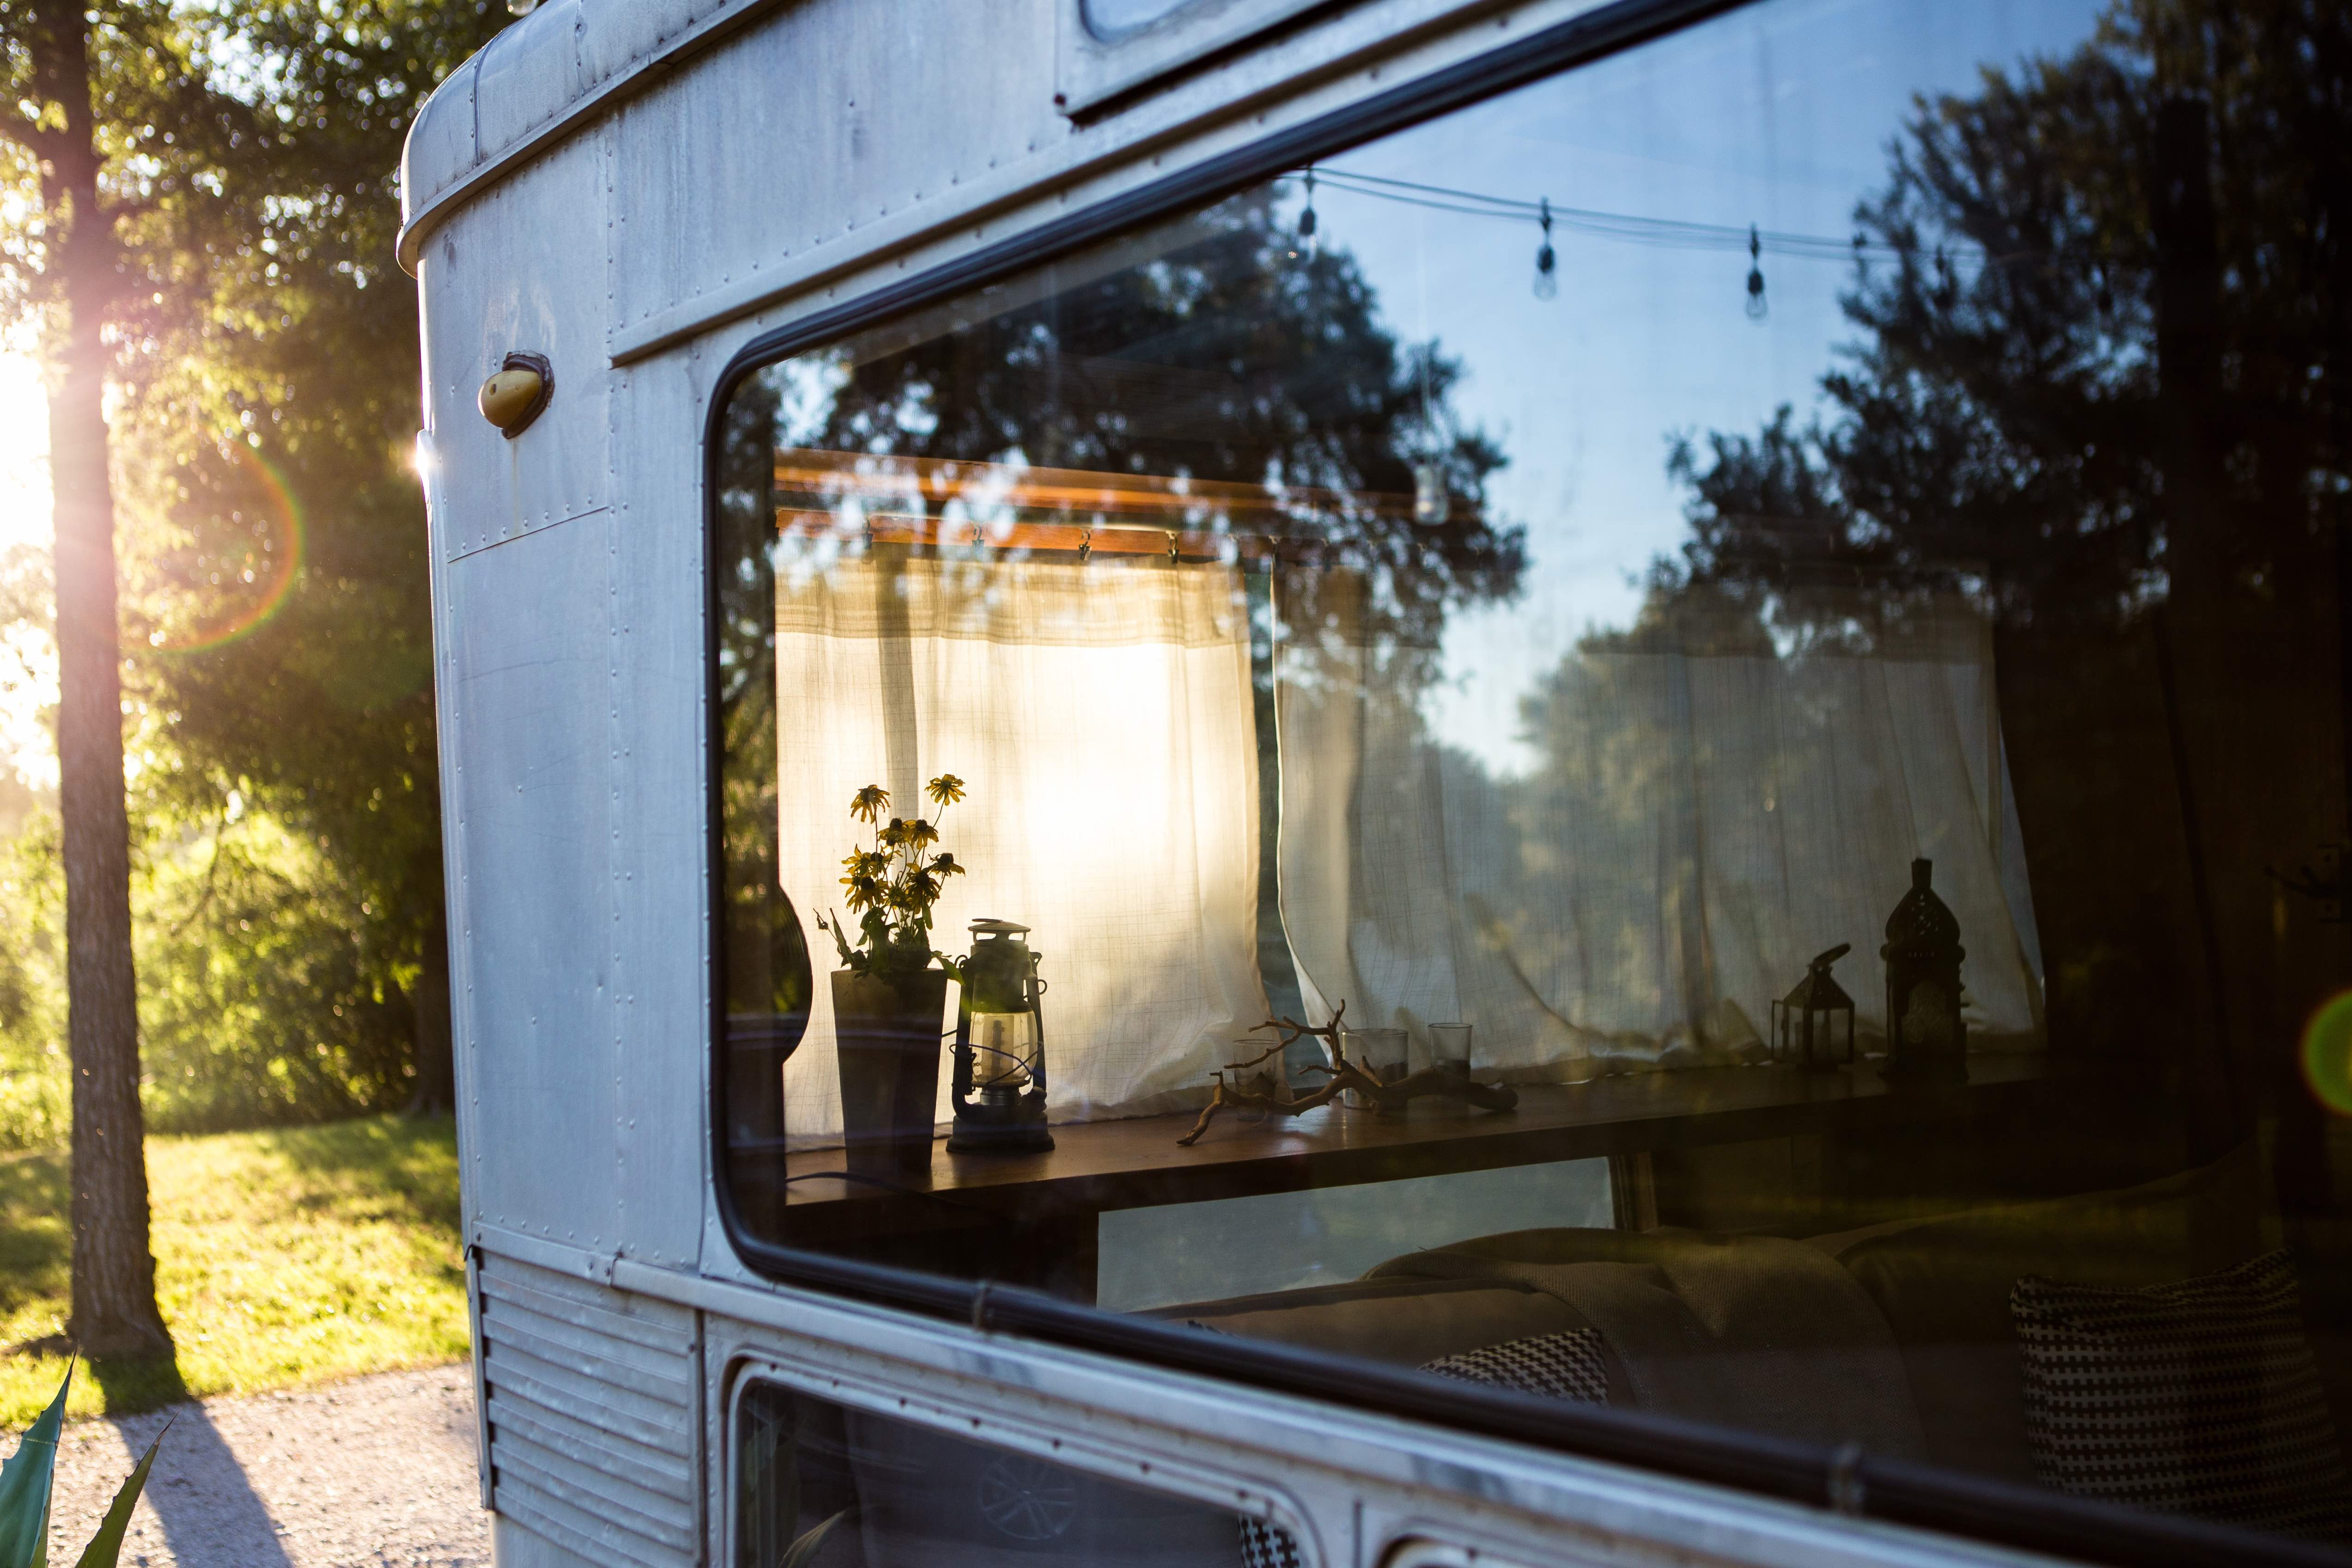 7 Must-Have Props to Stage Your RV in Listing Photos